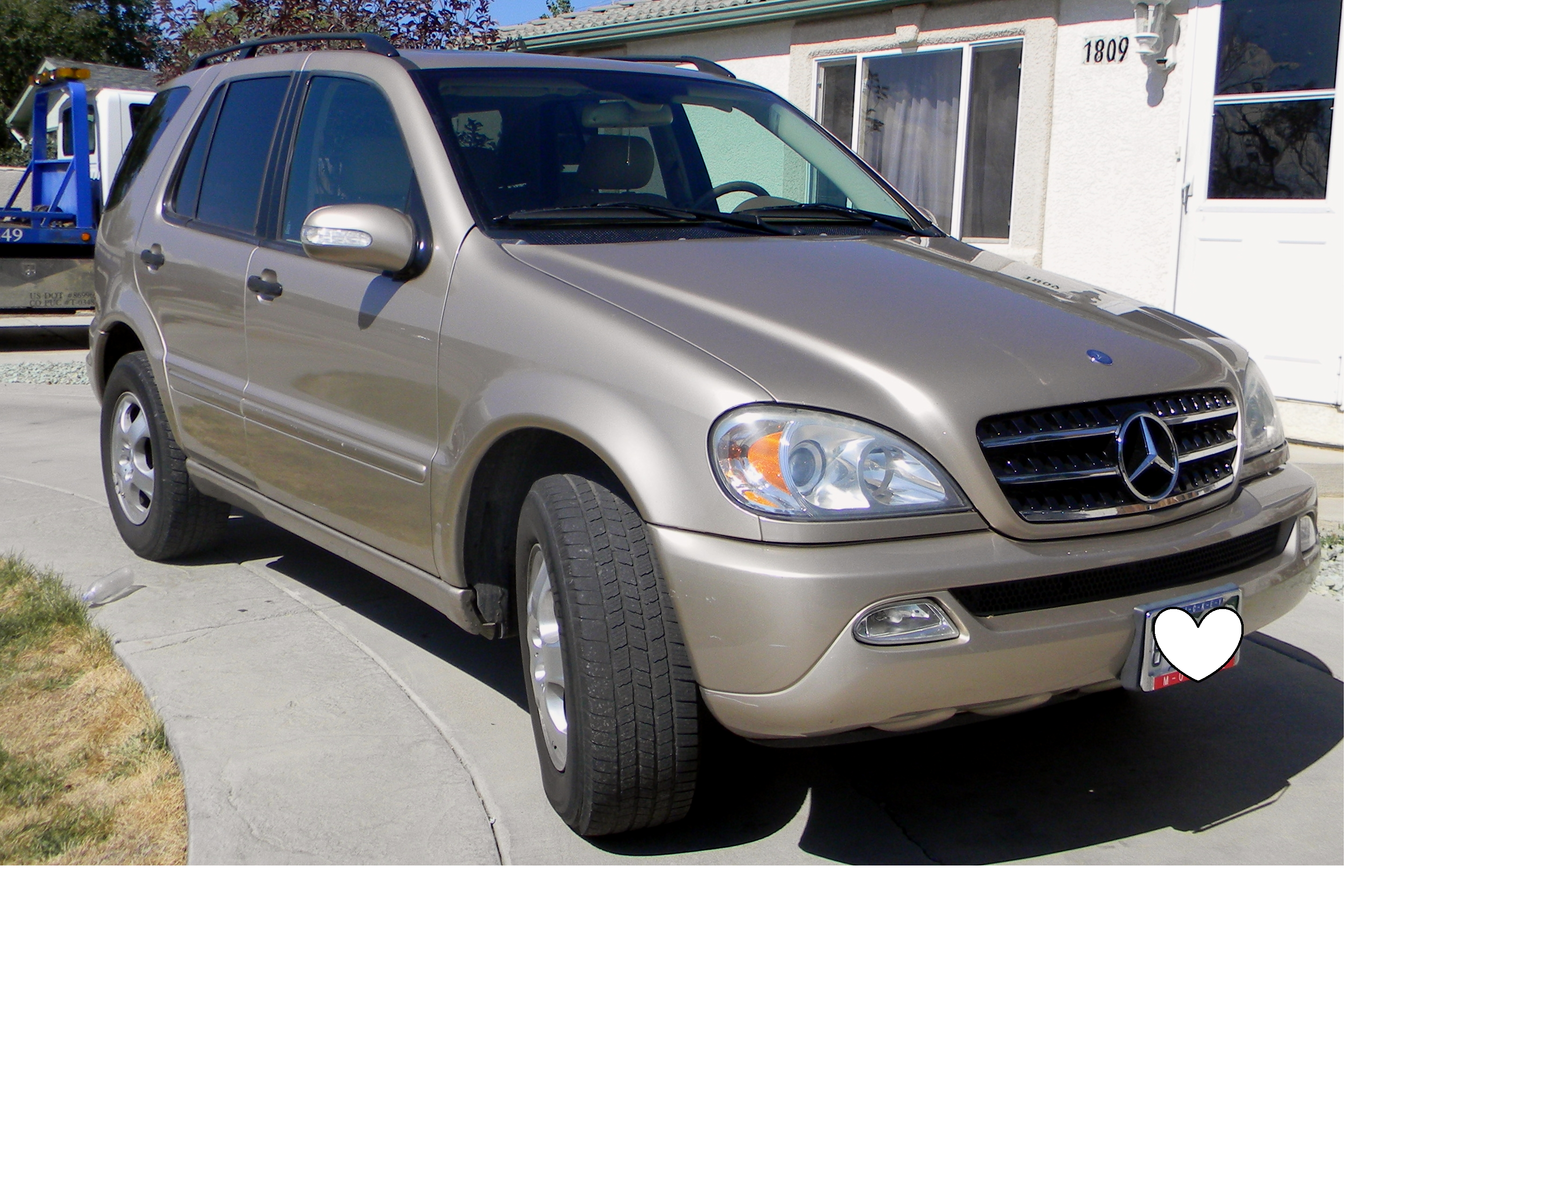 2003 mercedes benz m class exterior pictures cargurus for 2003 mercedes benz ml320